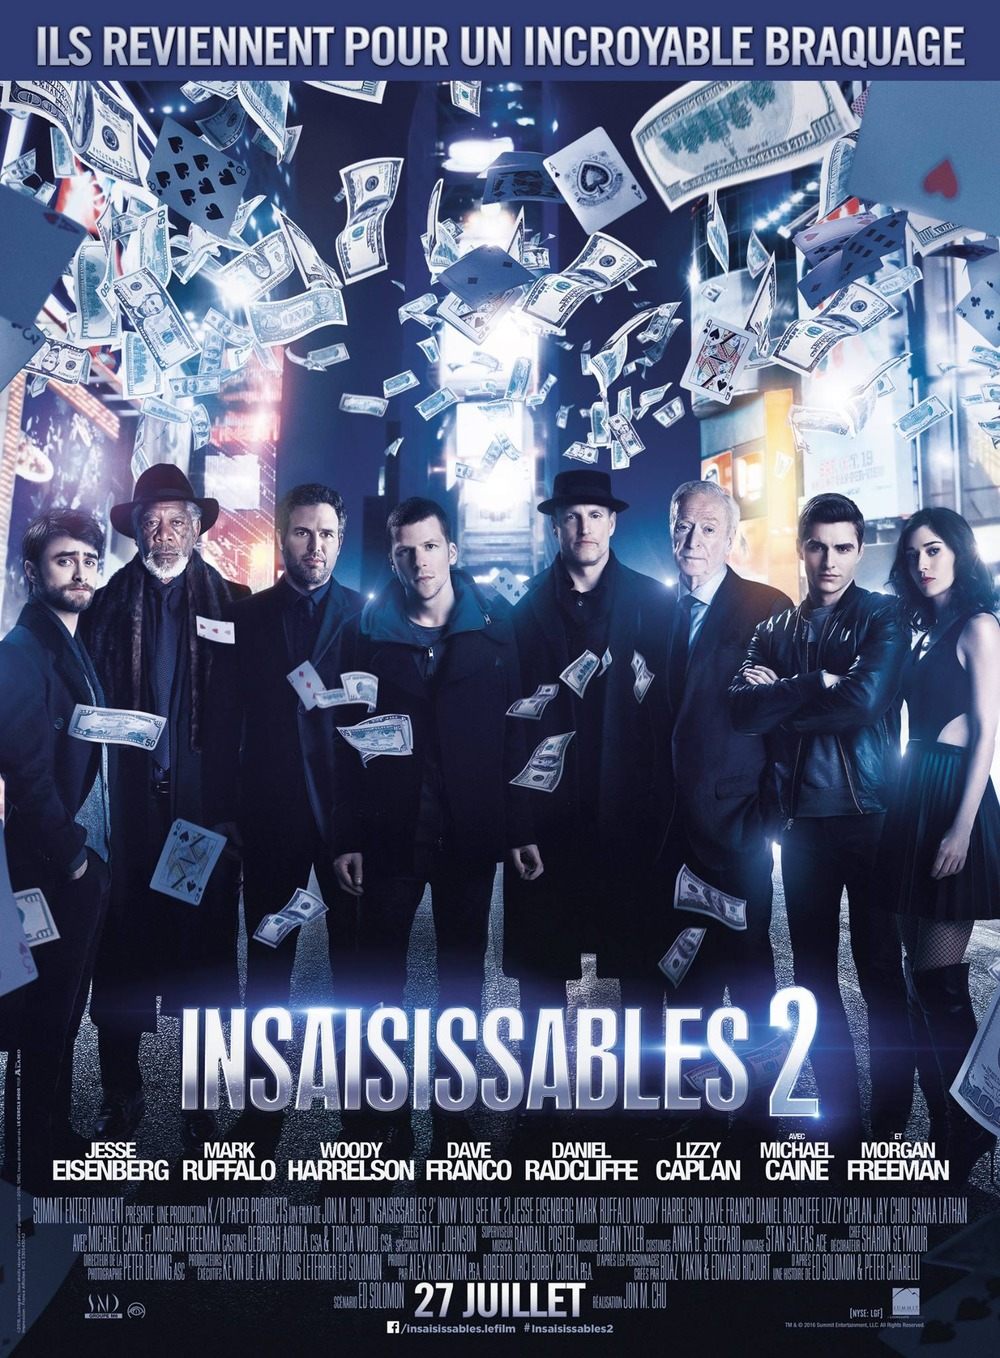 Now You See Me 2 UK Release Date Pushed to July, The Four Horsemen ...